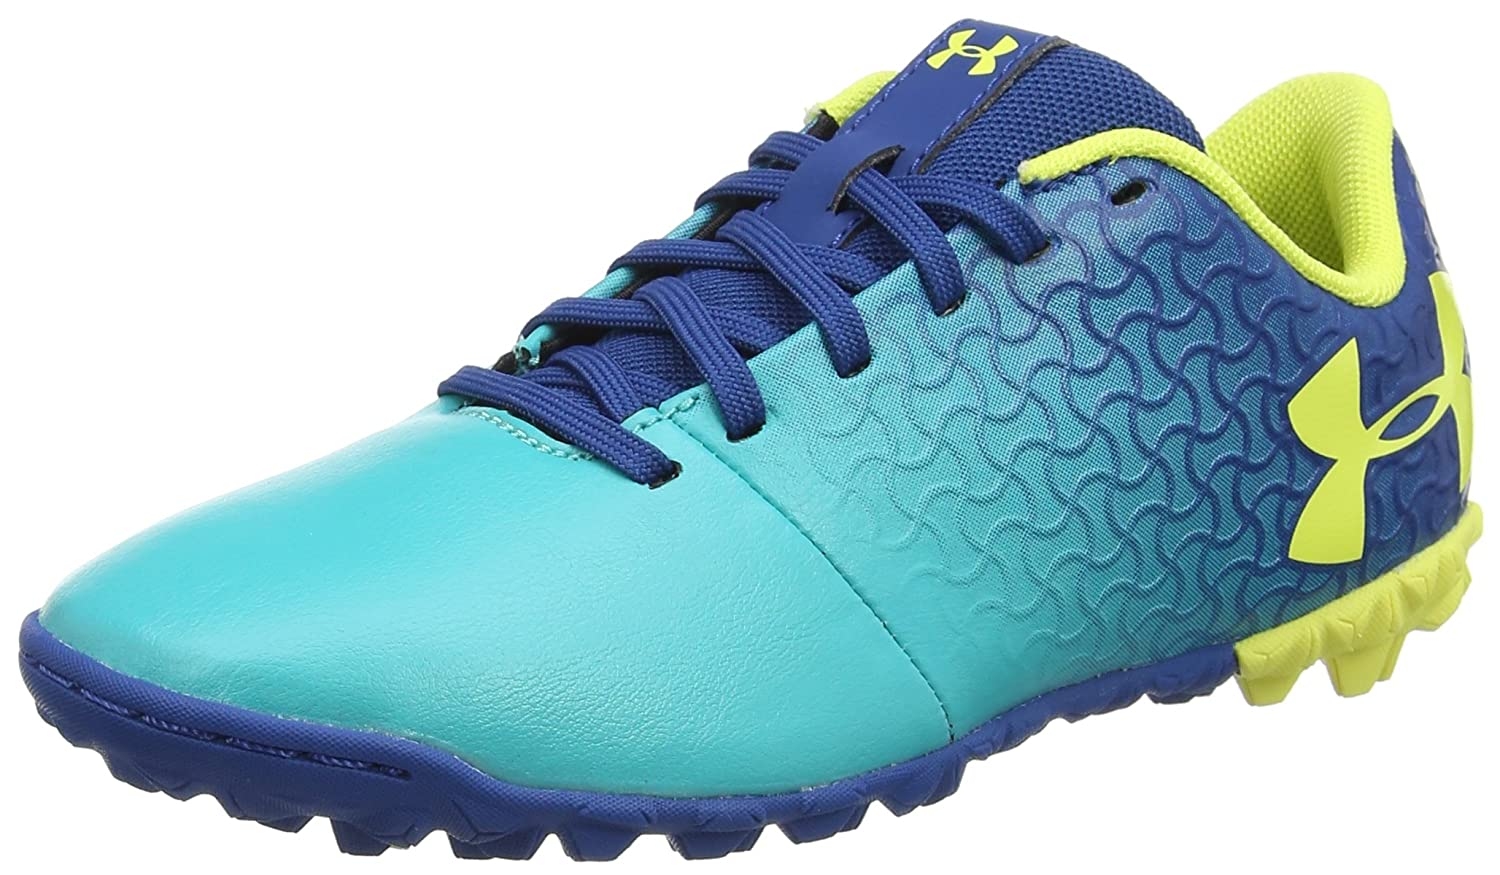 //Moroccan Blue Under Armour Magnetico Select JR Turf Soccer Shoe 300 5.5 Teal Punch